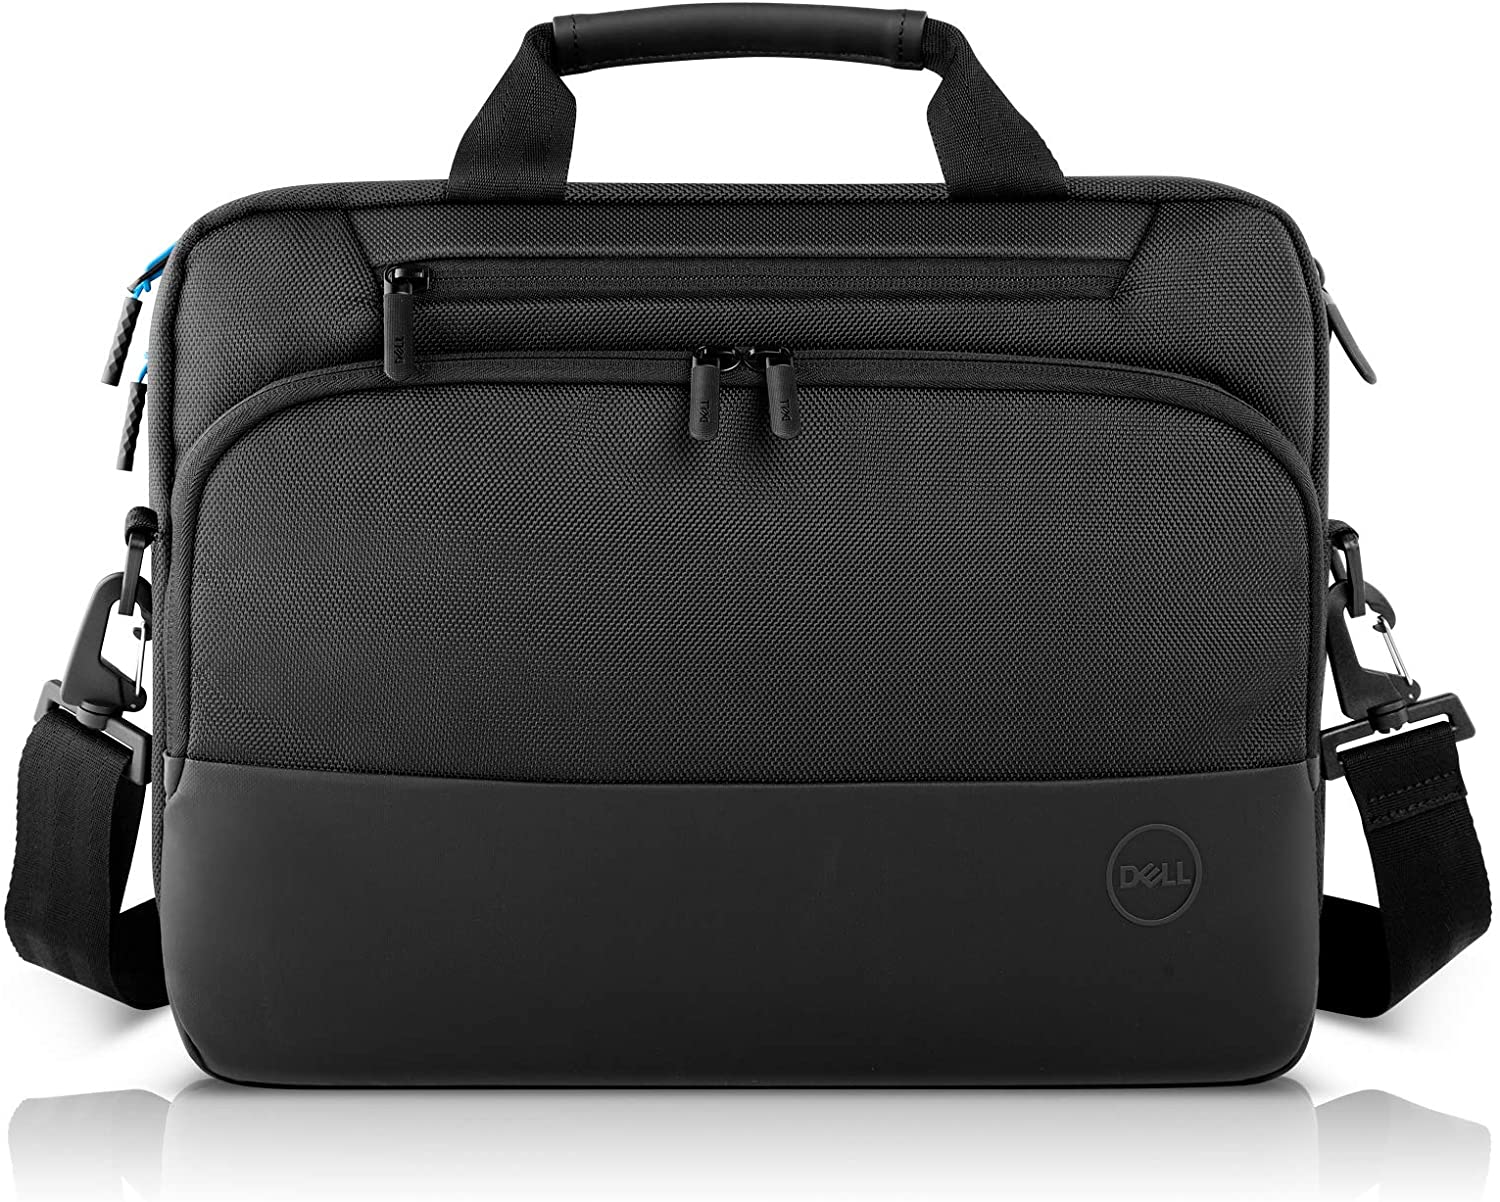 Dell Pro Briefcase 14 (PO1420C), Made with an Earth-Friendly Solution-Dyeing Process and Shock-Absorbing EVA Foam That Protects Your Laptop from Impact.